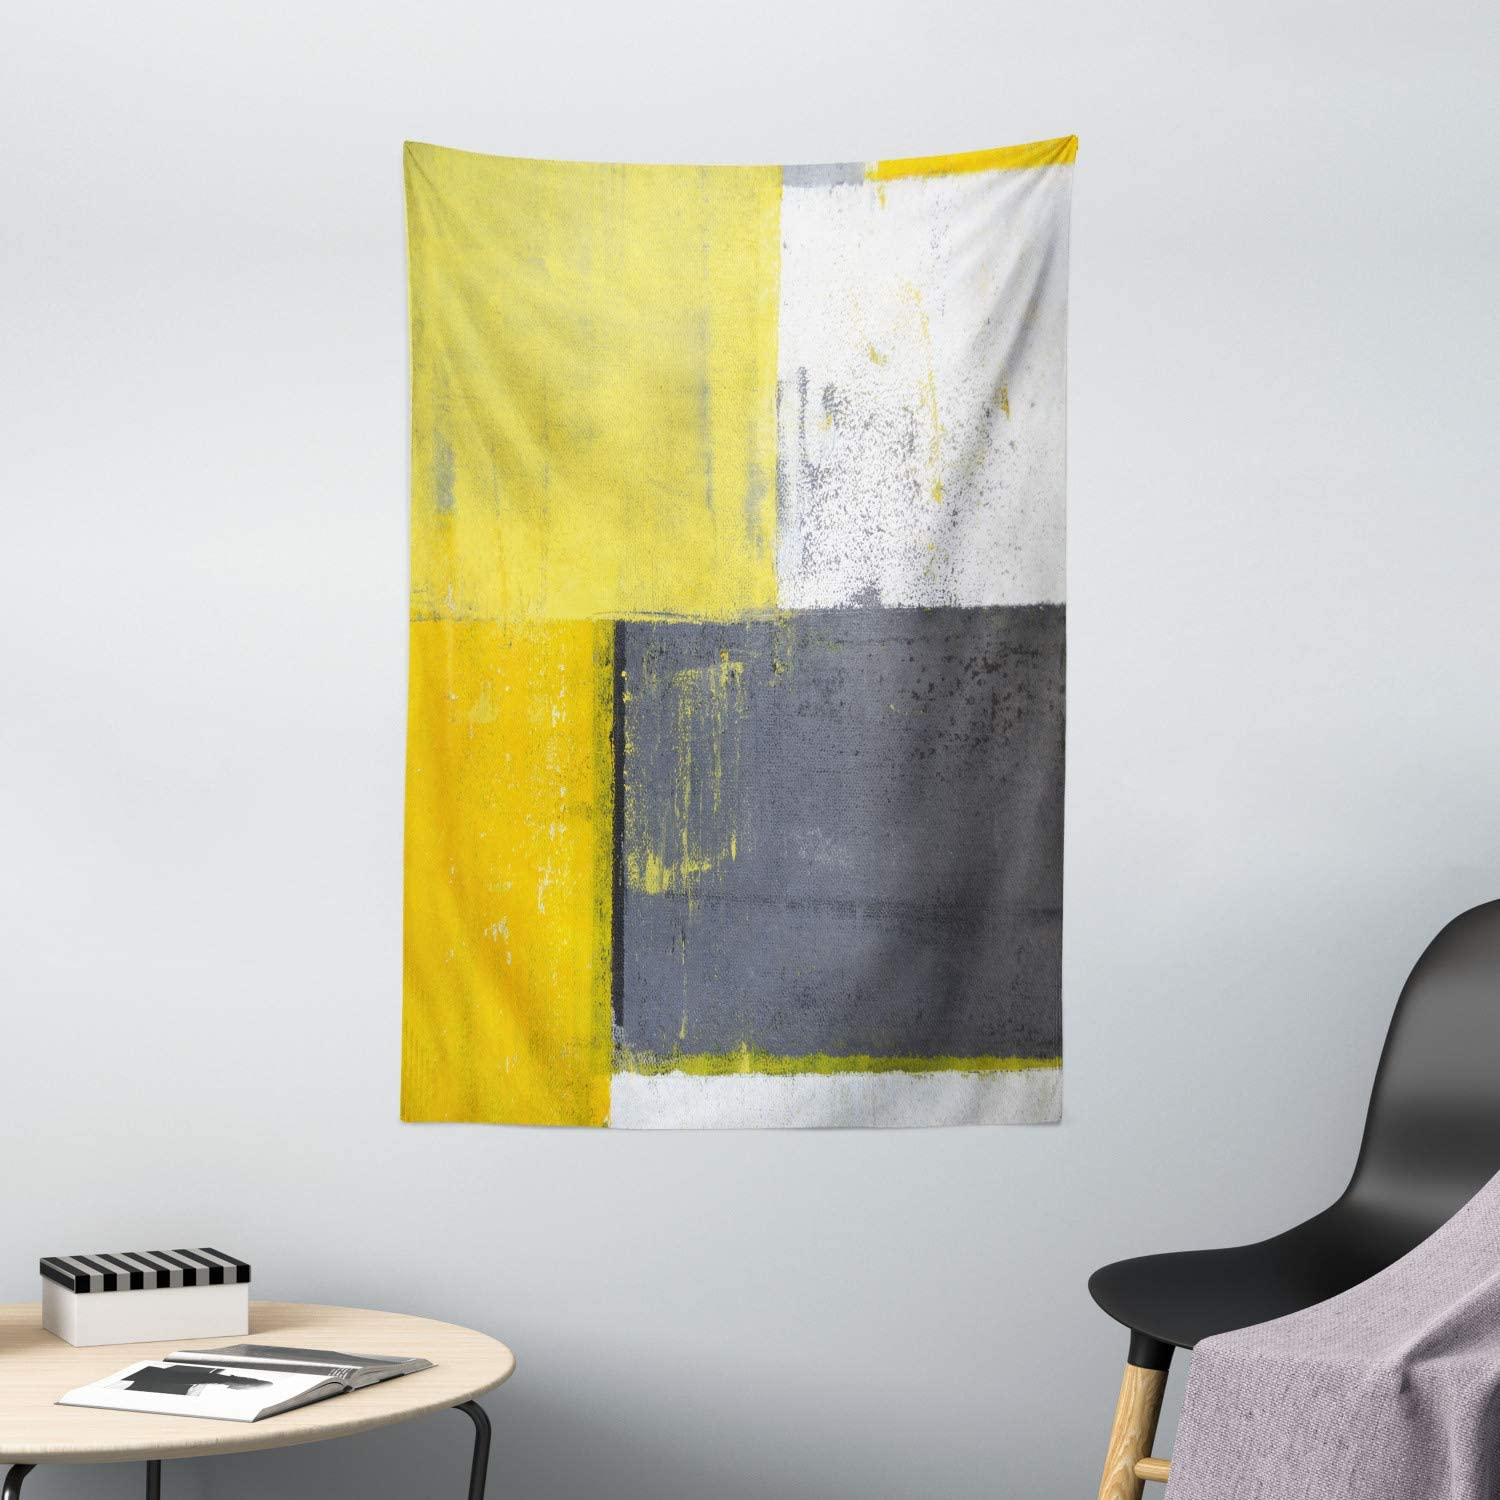 "Ambesonne Grey and Yellow Tapestry, Street Art Modern Grunge Abstract Design Squares, Wall Hanging for Bedroom Living Room Dorm Decor, 40"" X 60"", White Charcoal Grey Pale Yellow"